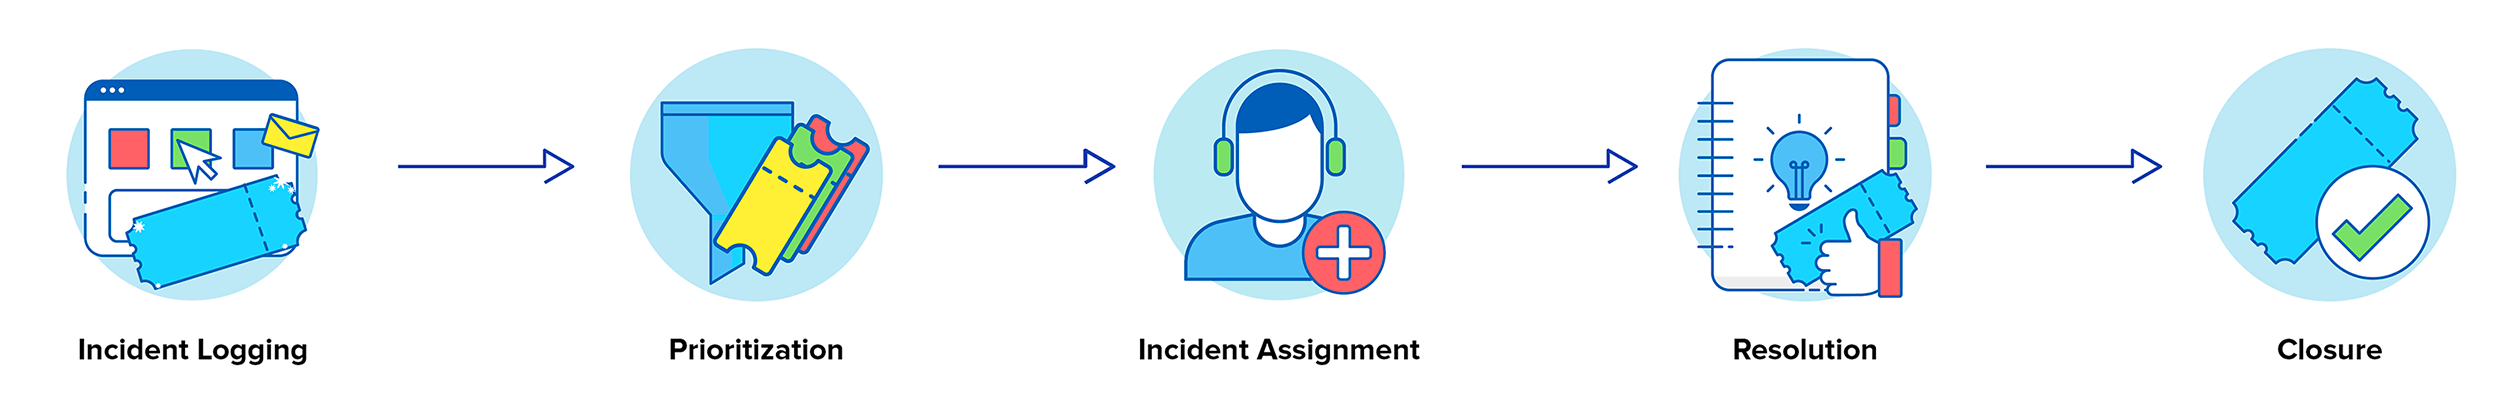 Incident resolution process workflow